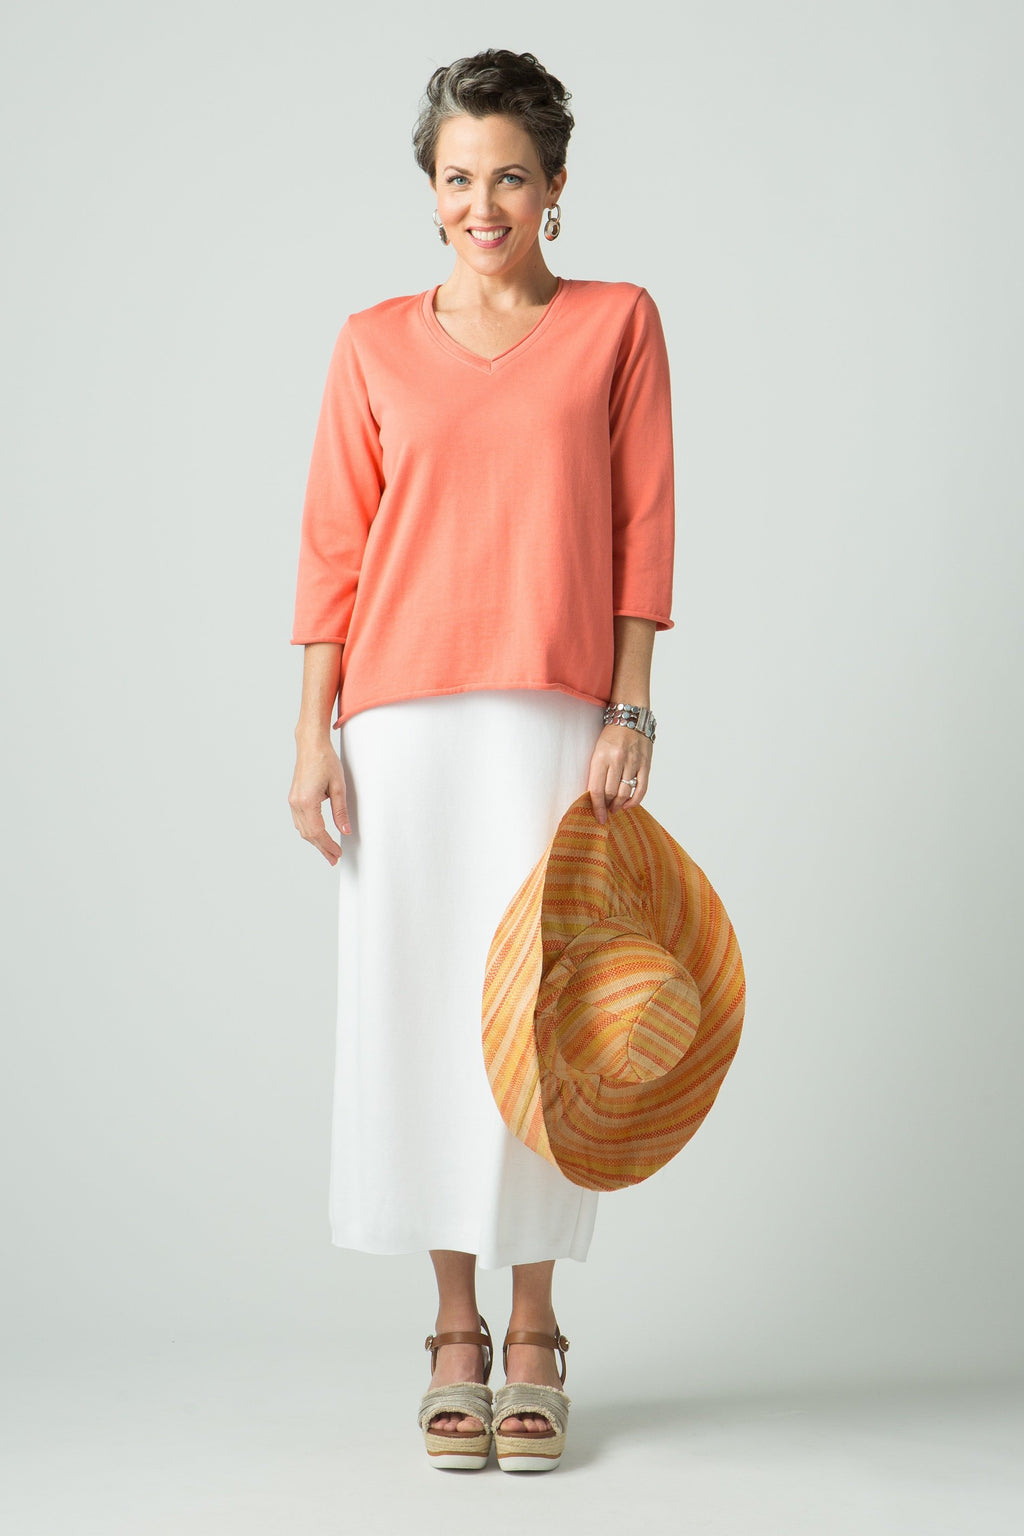 ¾ Sleeve V Neck Top with Roll Trim - New Orleans Knitwear